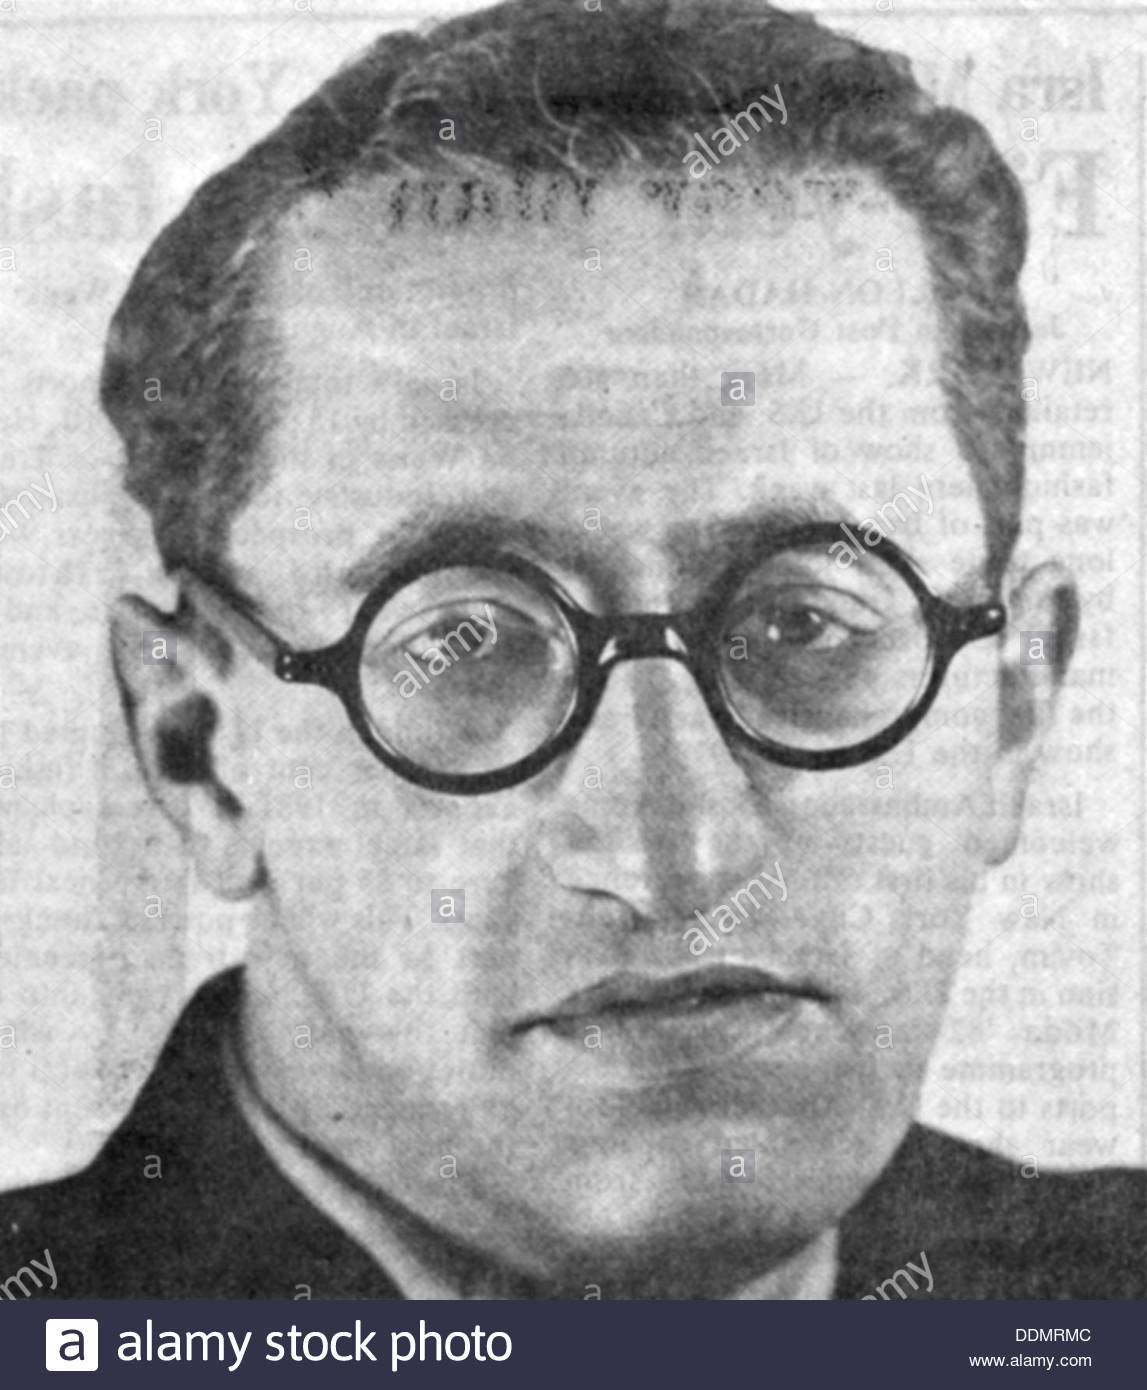 viktor-haim-arlosoroff-jewish-law-student-who-had-an-affair-with-magda-ddmrmc.jpg